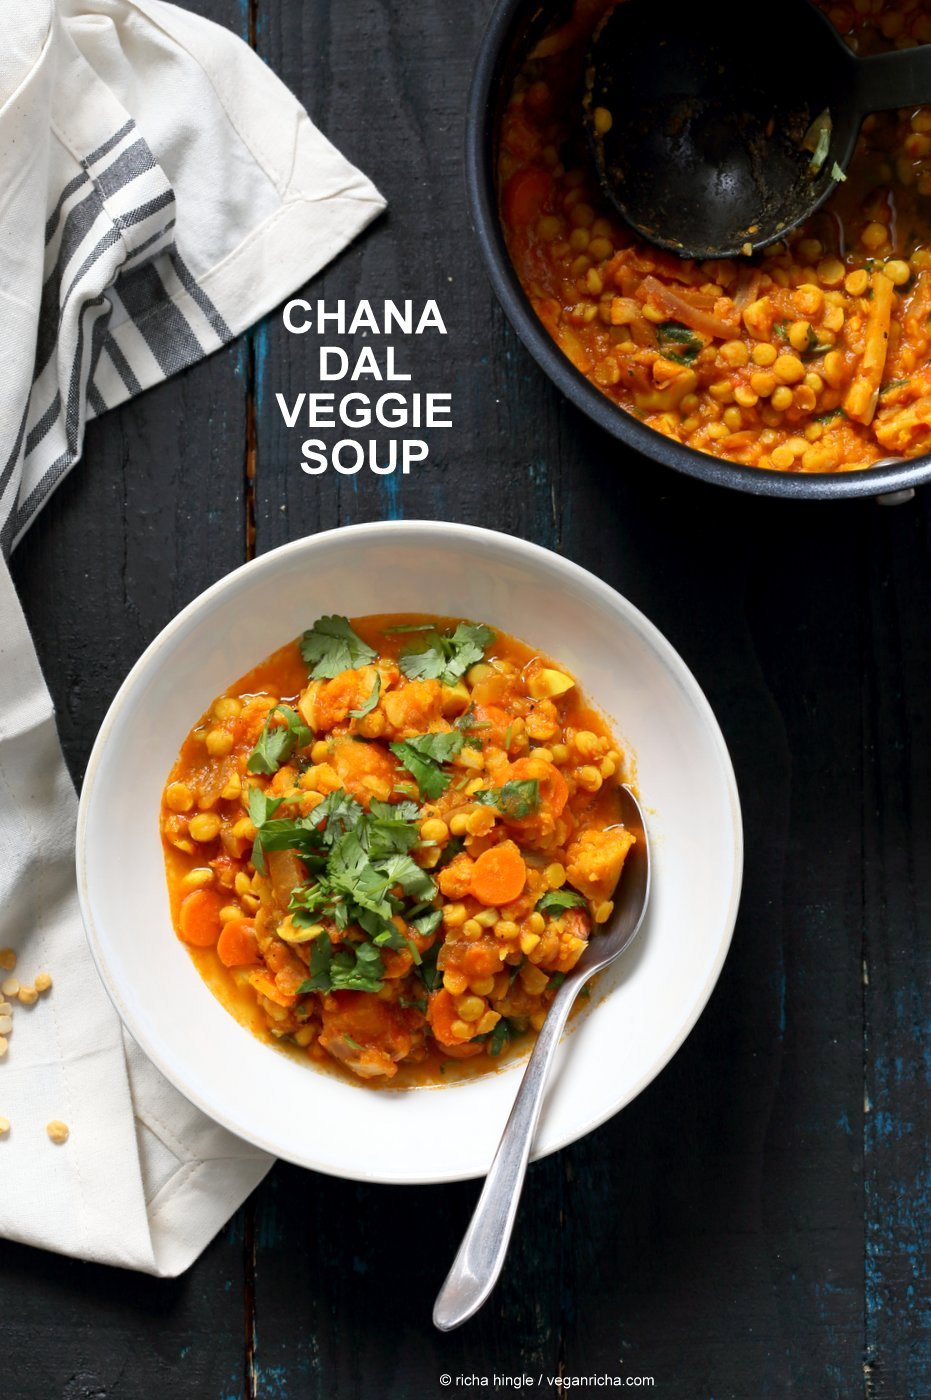 Chana Dal Veggie Soup. Easy Split Pea Soup with turmeric, spices, carrots, cauliflower, butternut squash. 1 Pot, ready within 45 minutes. Use split chickpeas (Chana Dal) or other split peas or lentils. Vegan Gluten-free Soy-free Recipe | VeganRicha.com